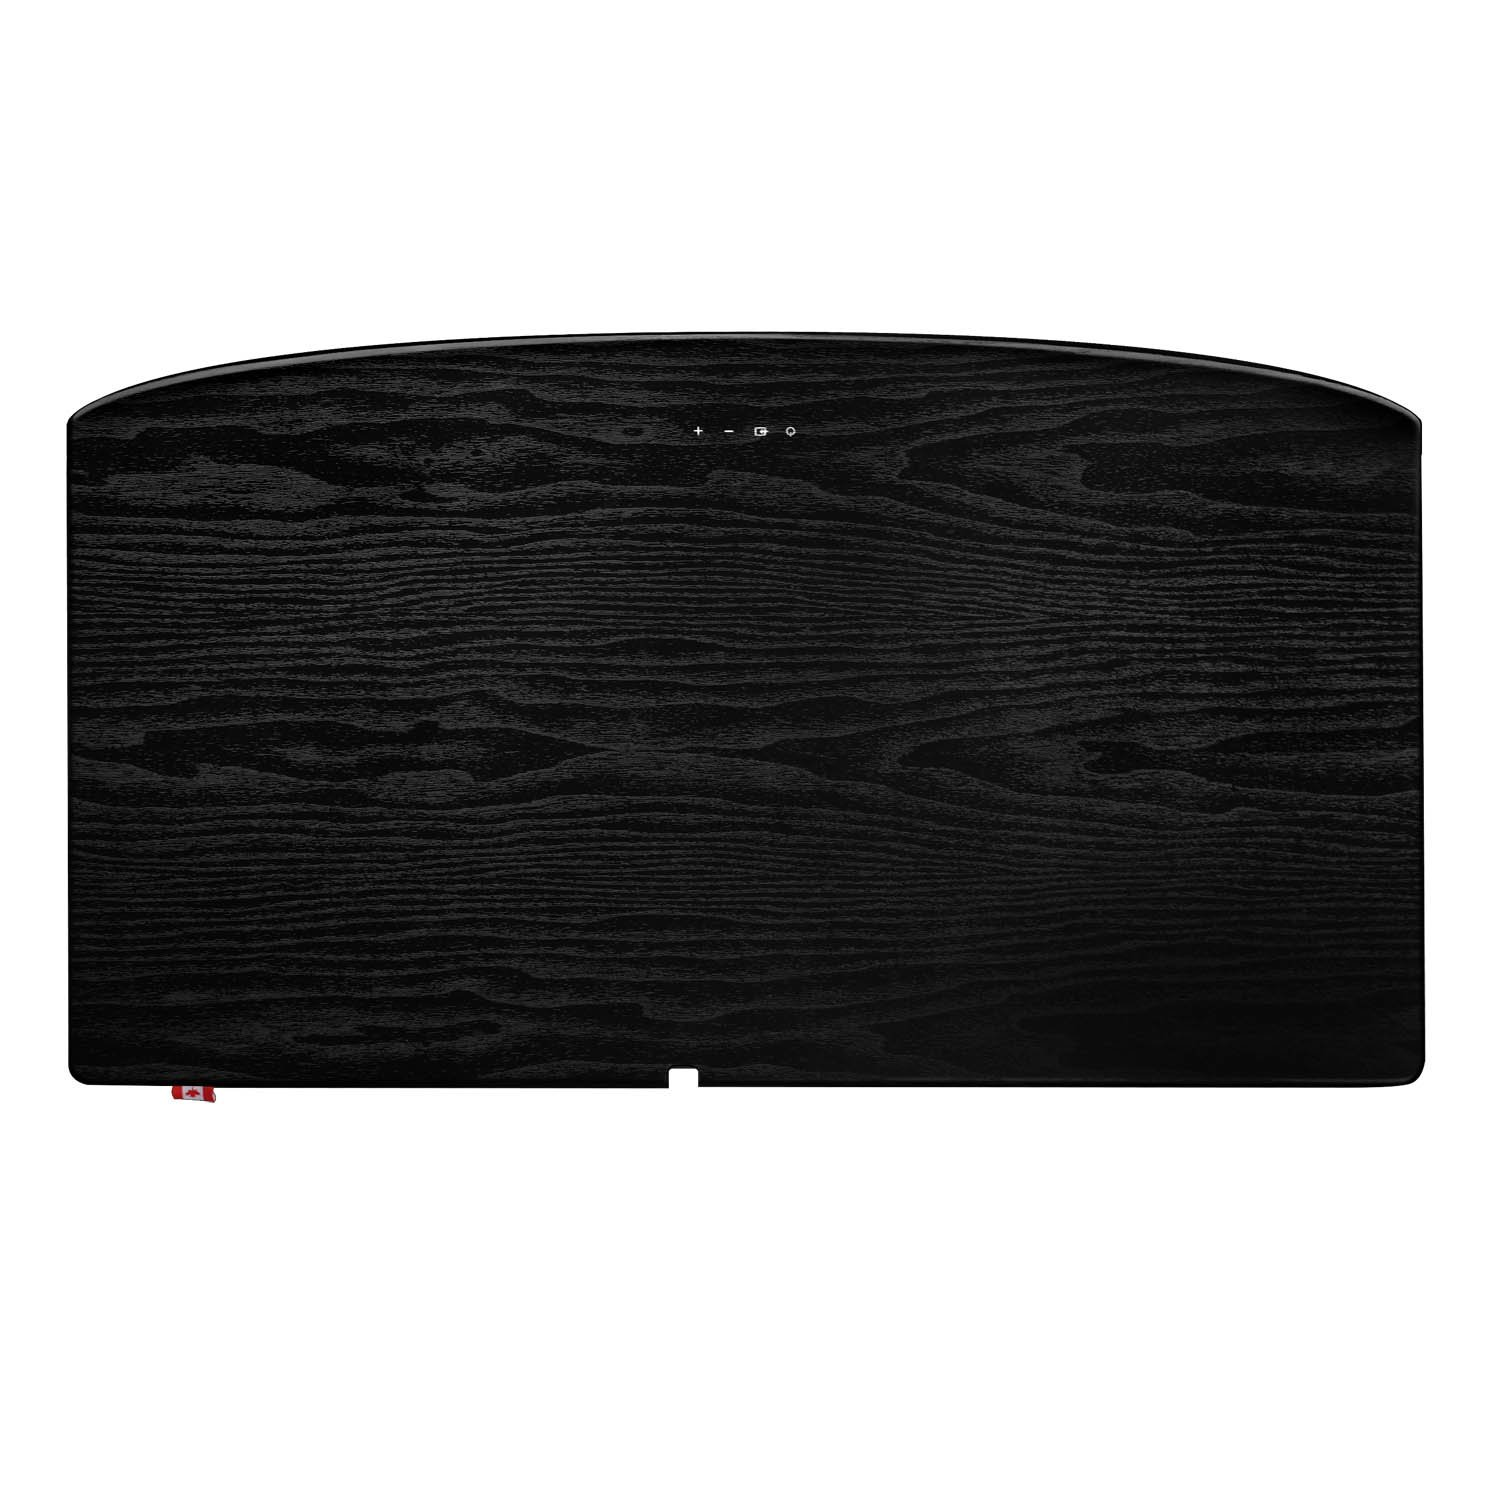 Wide Angle Soundstage Fluance AB40 High Performance Soundbase Home Theater System with 3D Surround Sound /& Enhanced Bass Boost Bluetooth aptX Black Ash